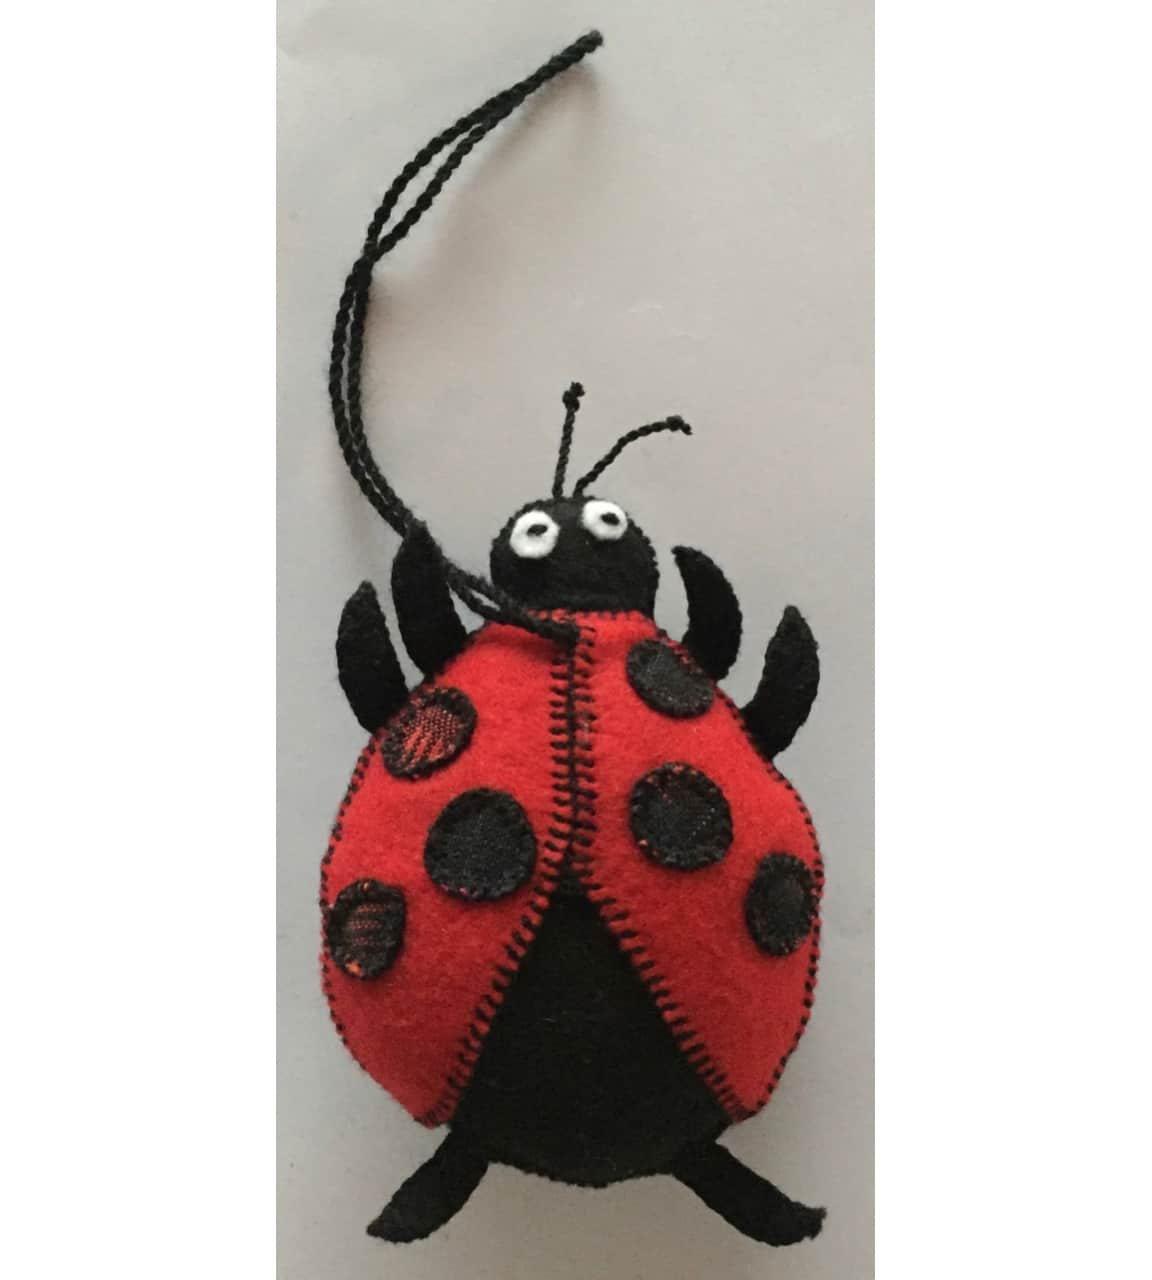 Ladybug Ornament - Felt and Repurposed Traditional Fabric